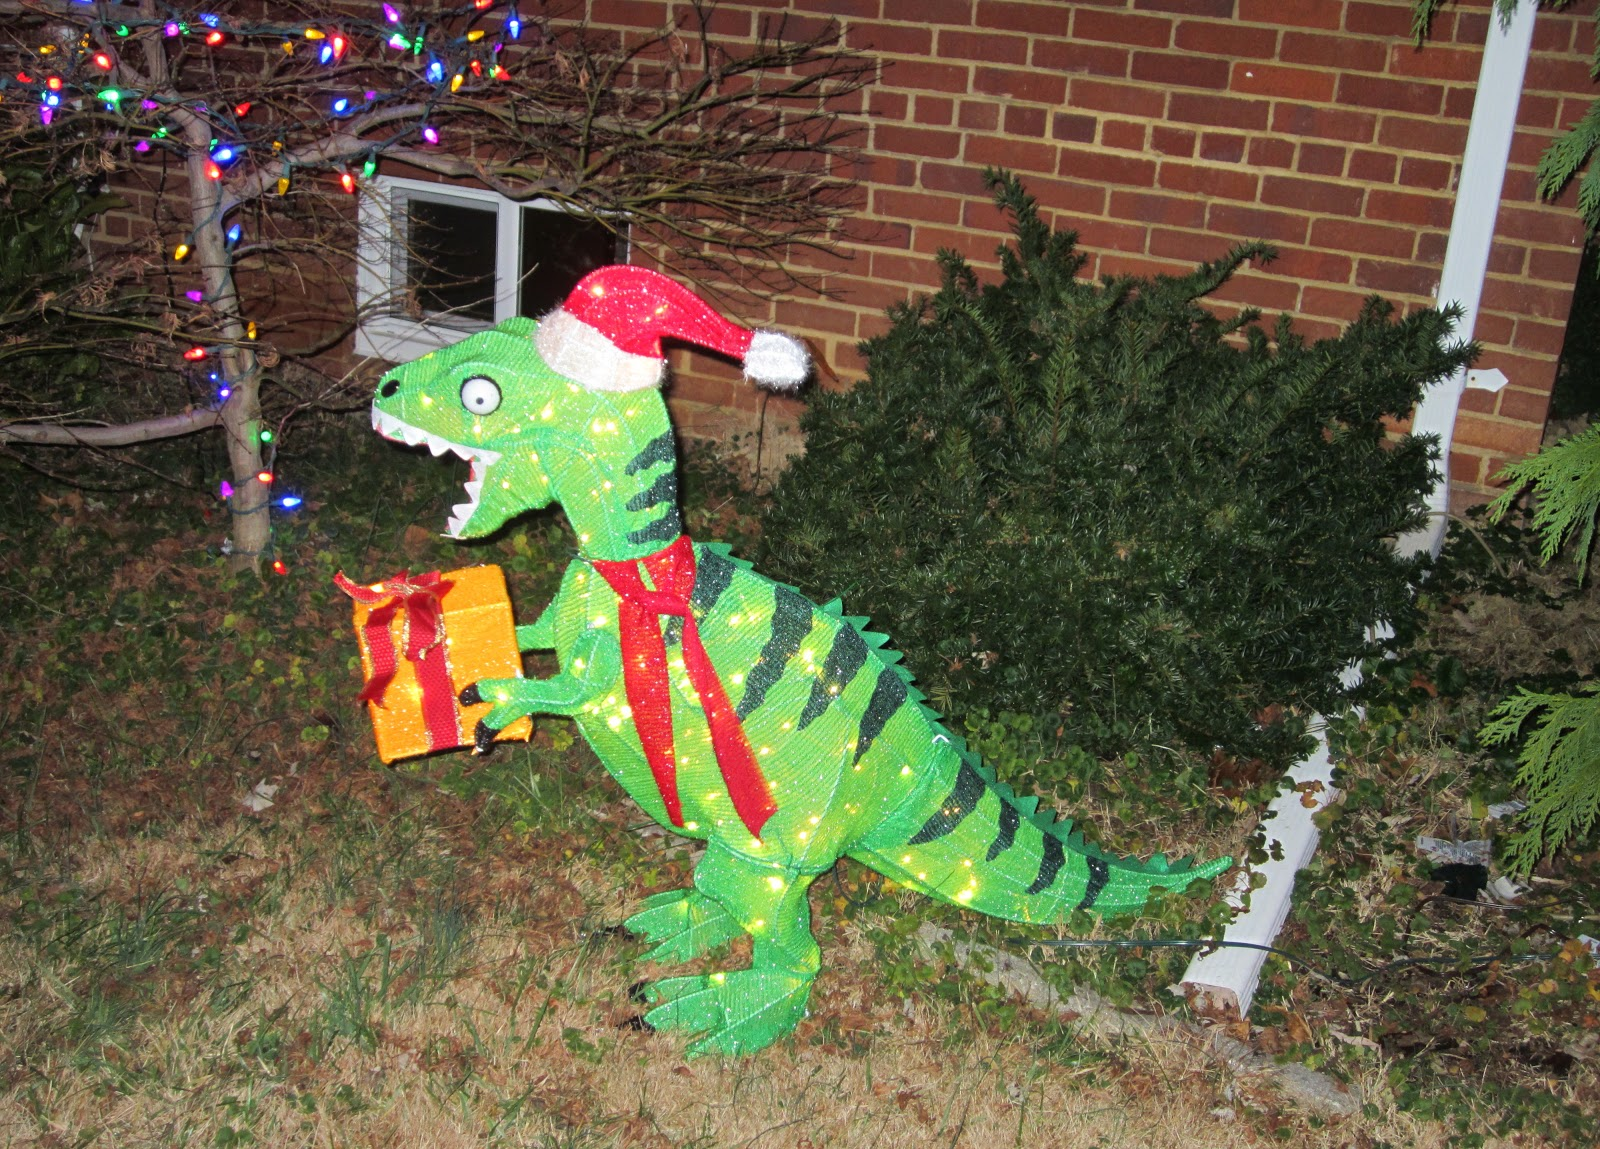 Dinosaur Lawn Decorations The Annandale Blog Some Annandale Residents Have Gone All Out On